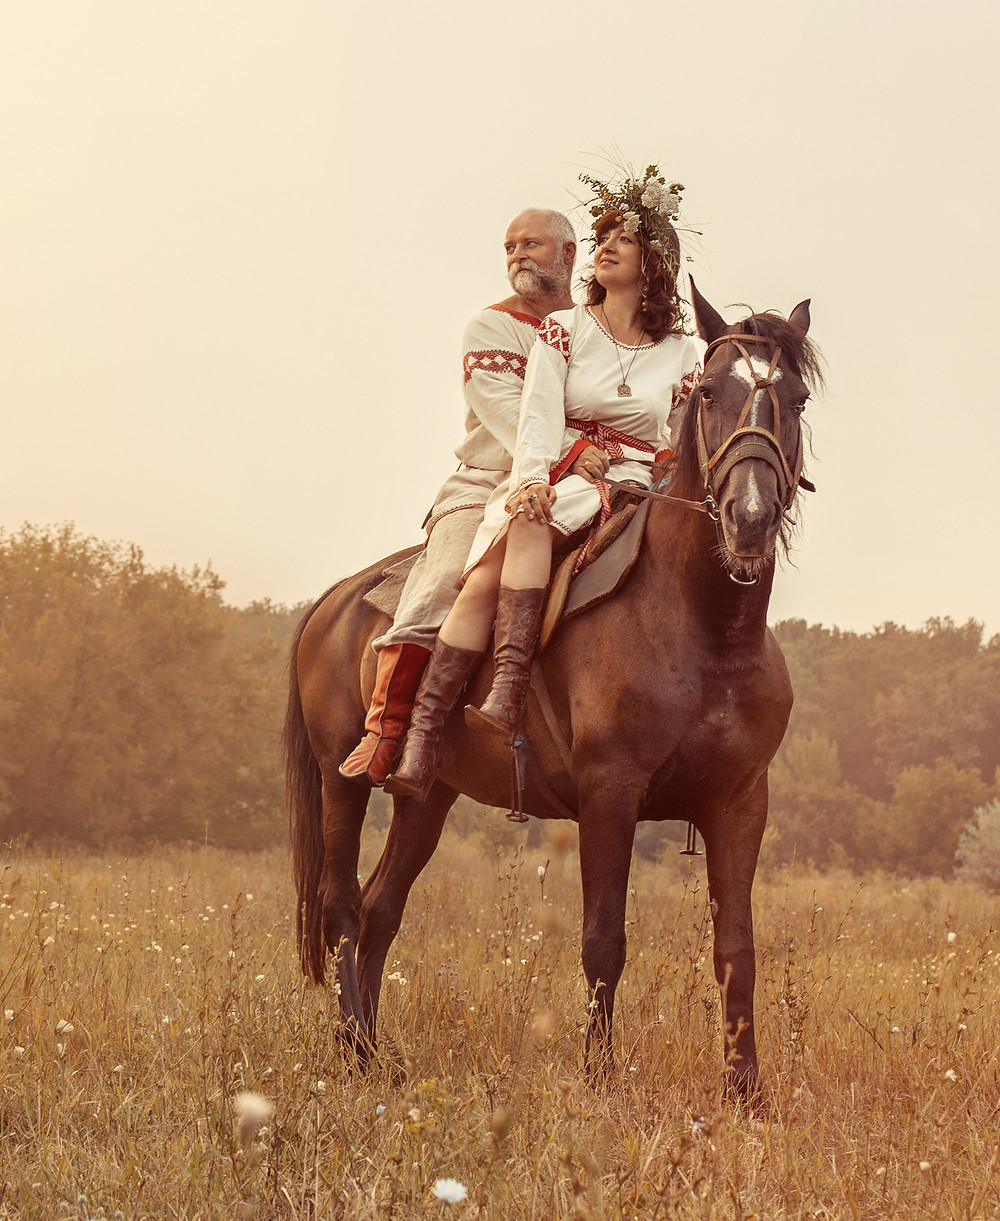 Why not ride into your wedding ceremony on horseback?